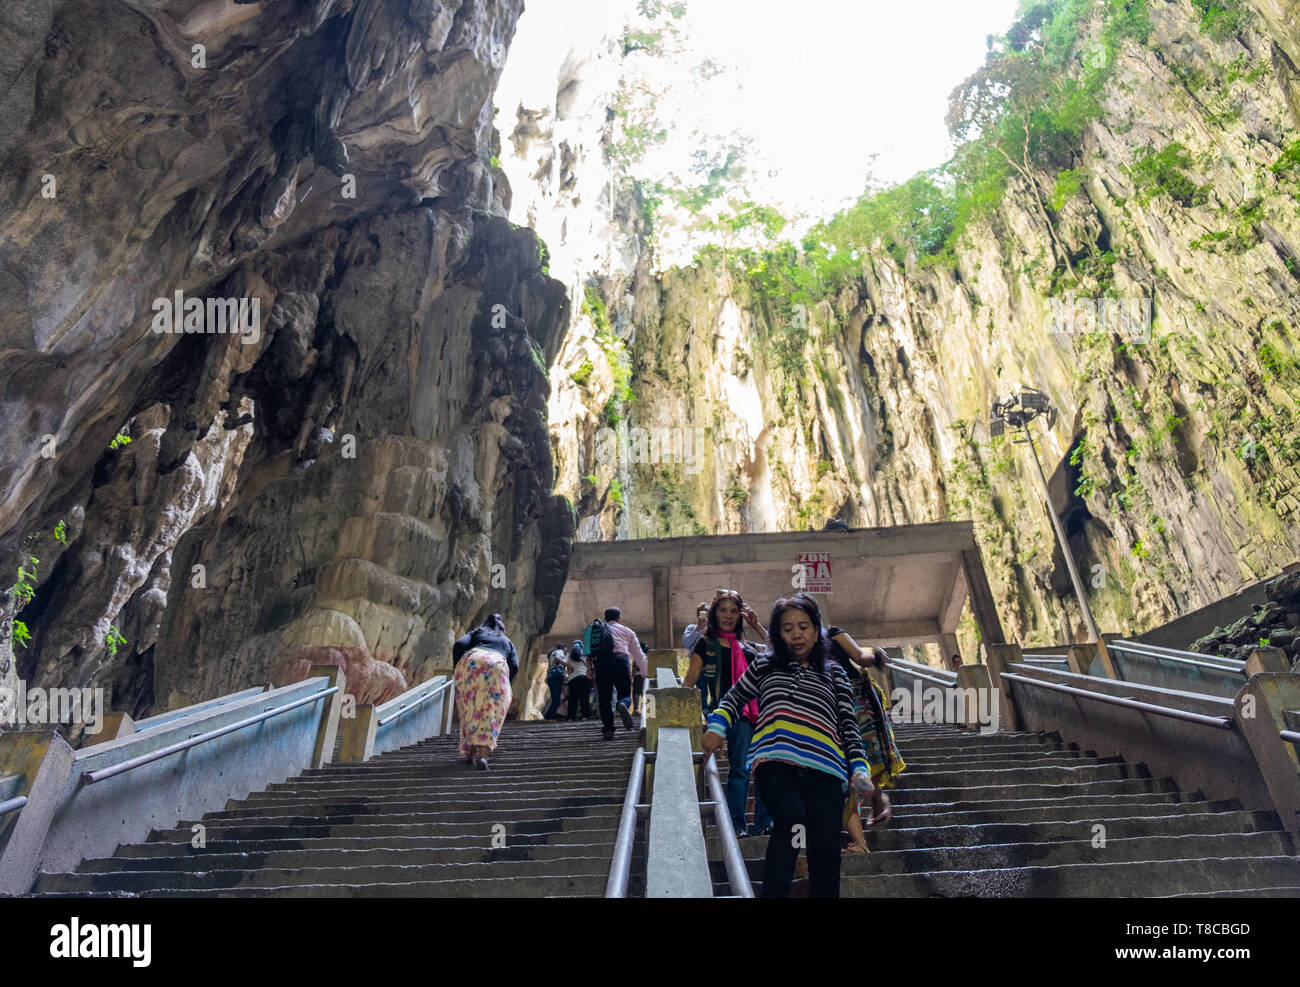 Tourists ascend and descend stairs at Batu Cave, Gombak